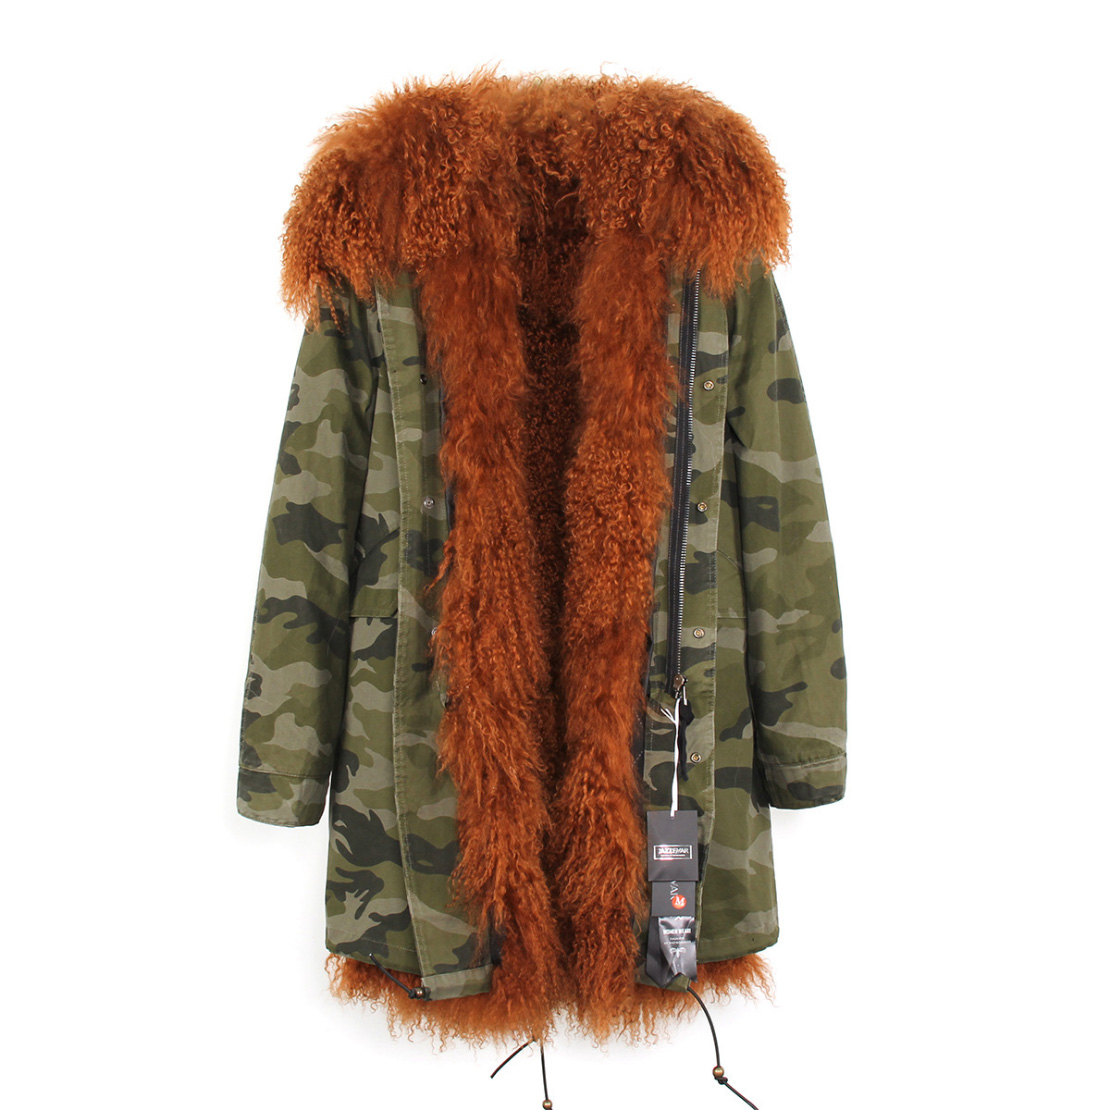 Tibet Sheep Fur Hooded Parka 119 Details 14